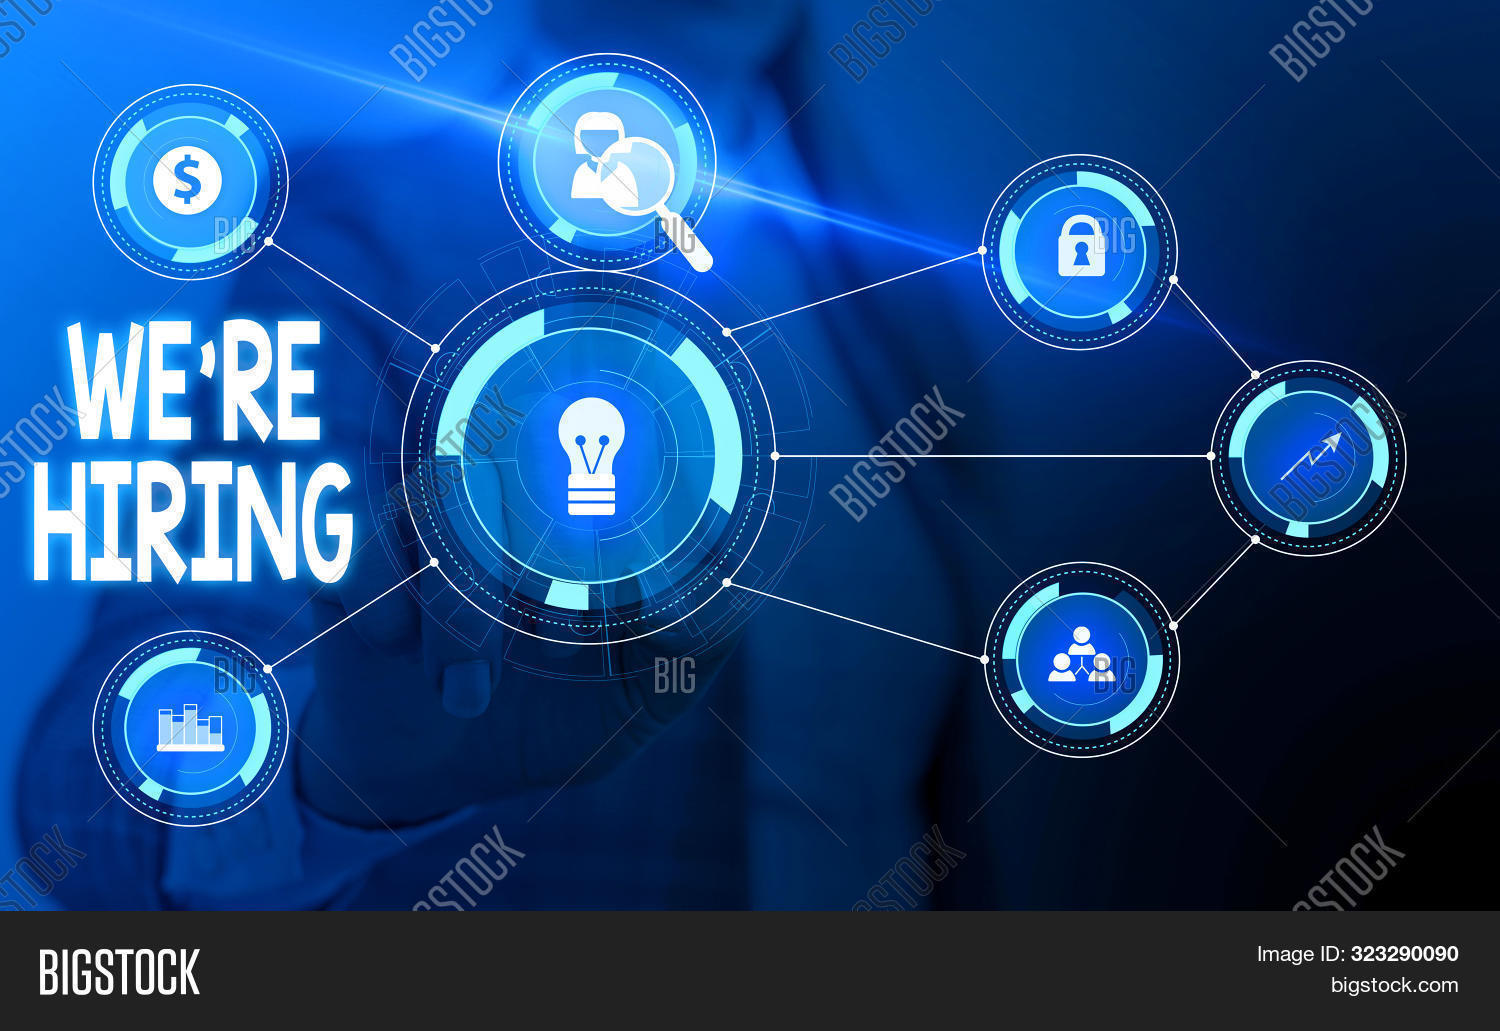 Text sign showing We Re Hiring. Conceptual photo Advertising Employment Workforce Placement New Job Woman wear formal work suit presenting presentation using smart device.